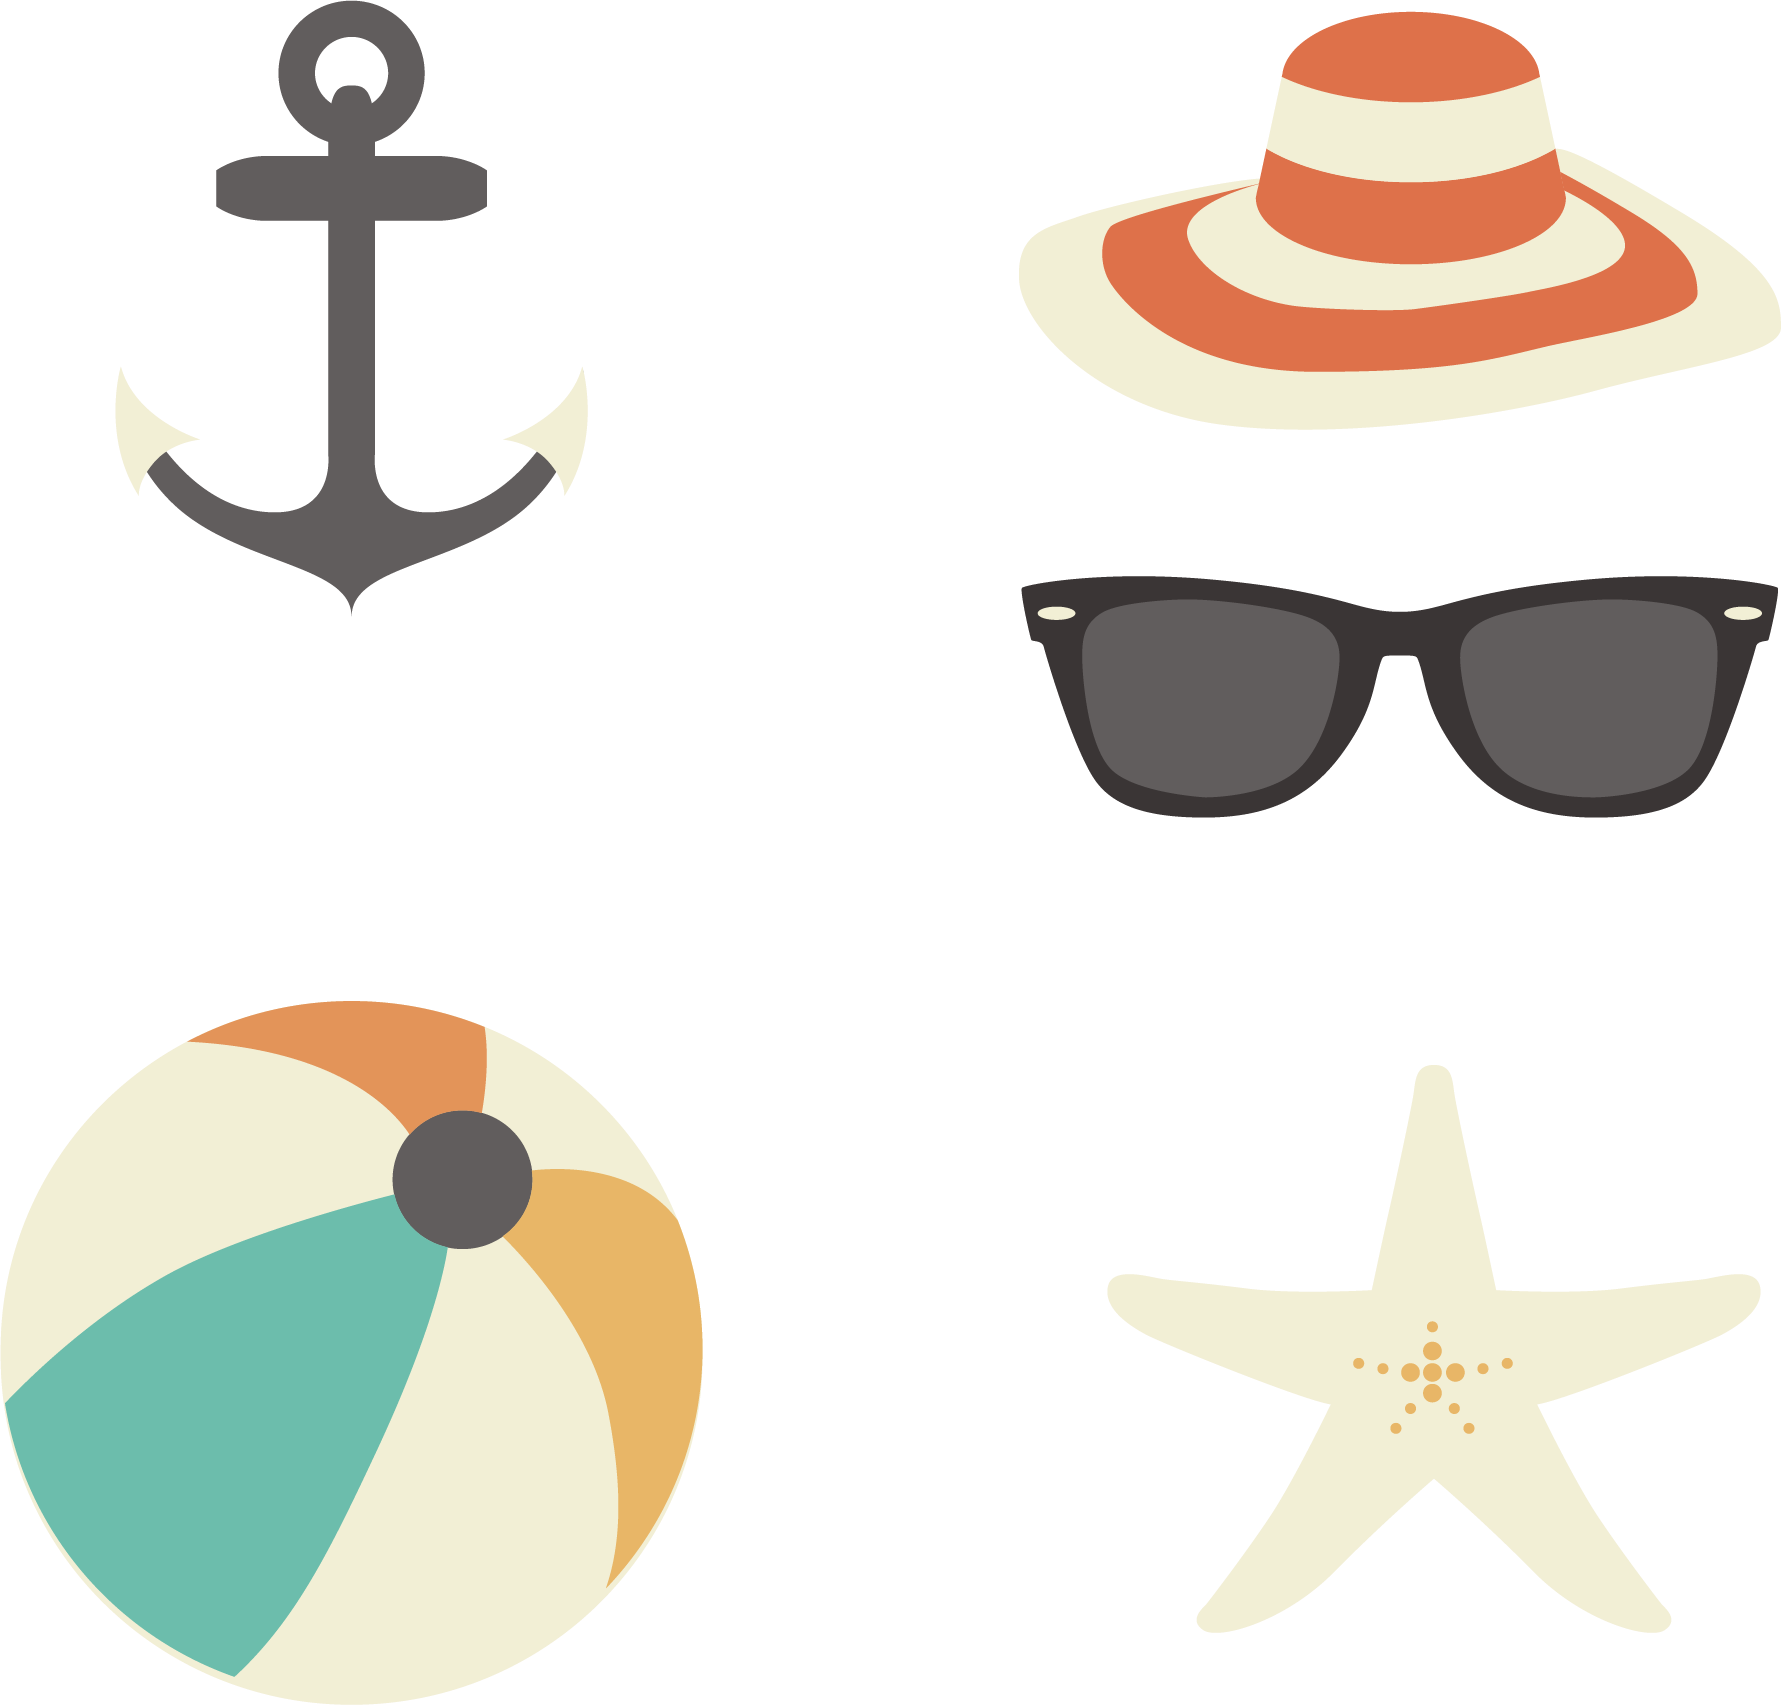 Sunglasses clipart striped. Red sun hat transprent